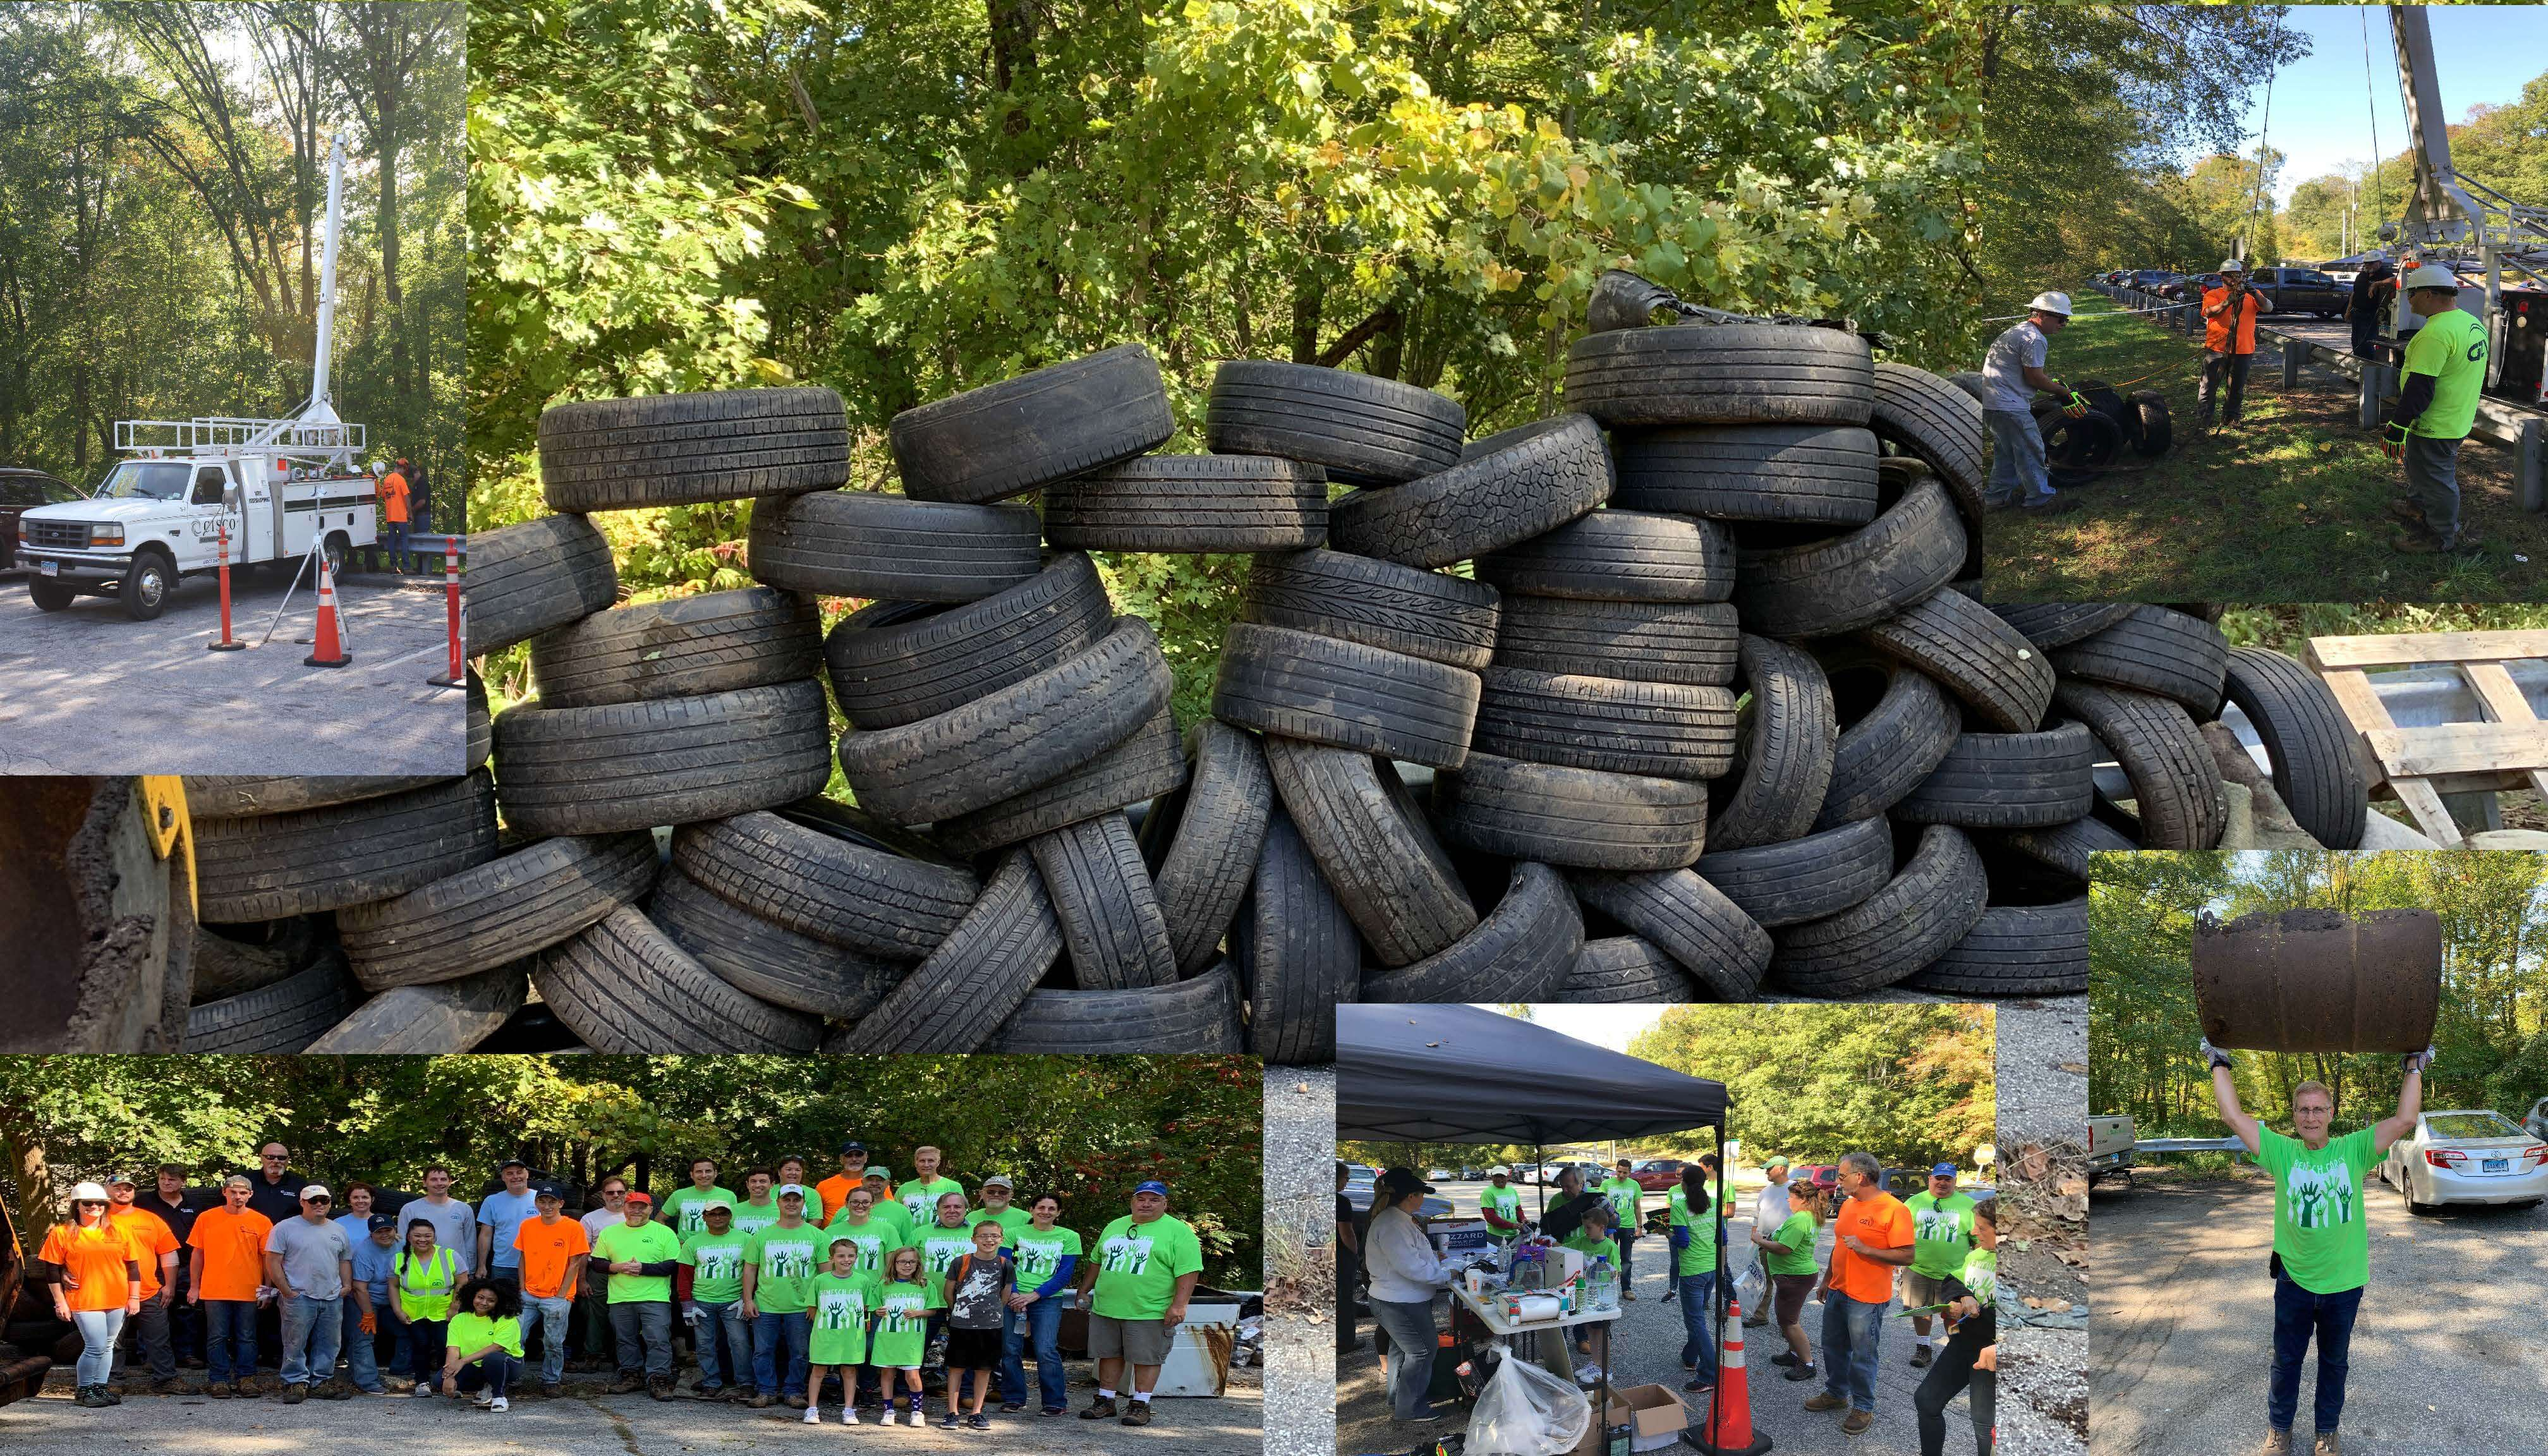 wall of tires